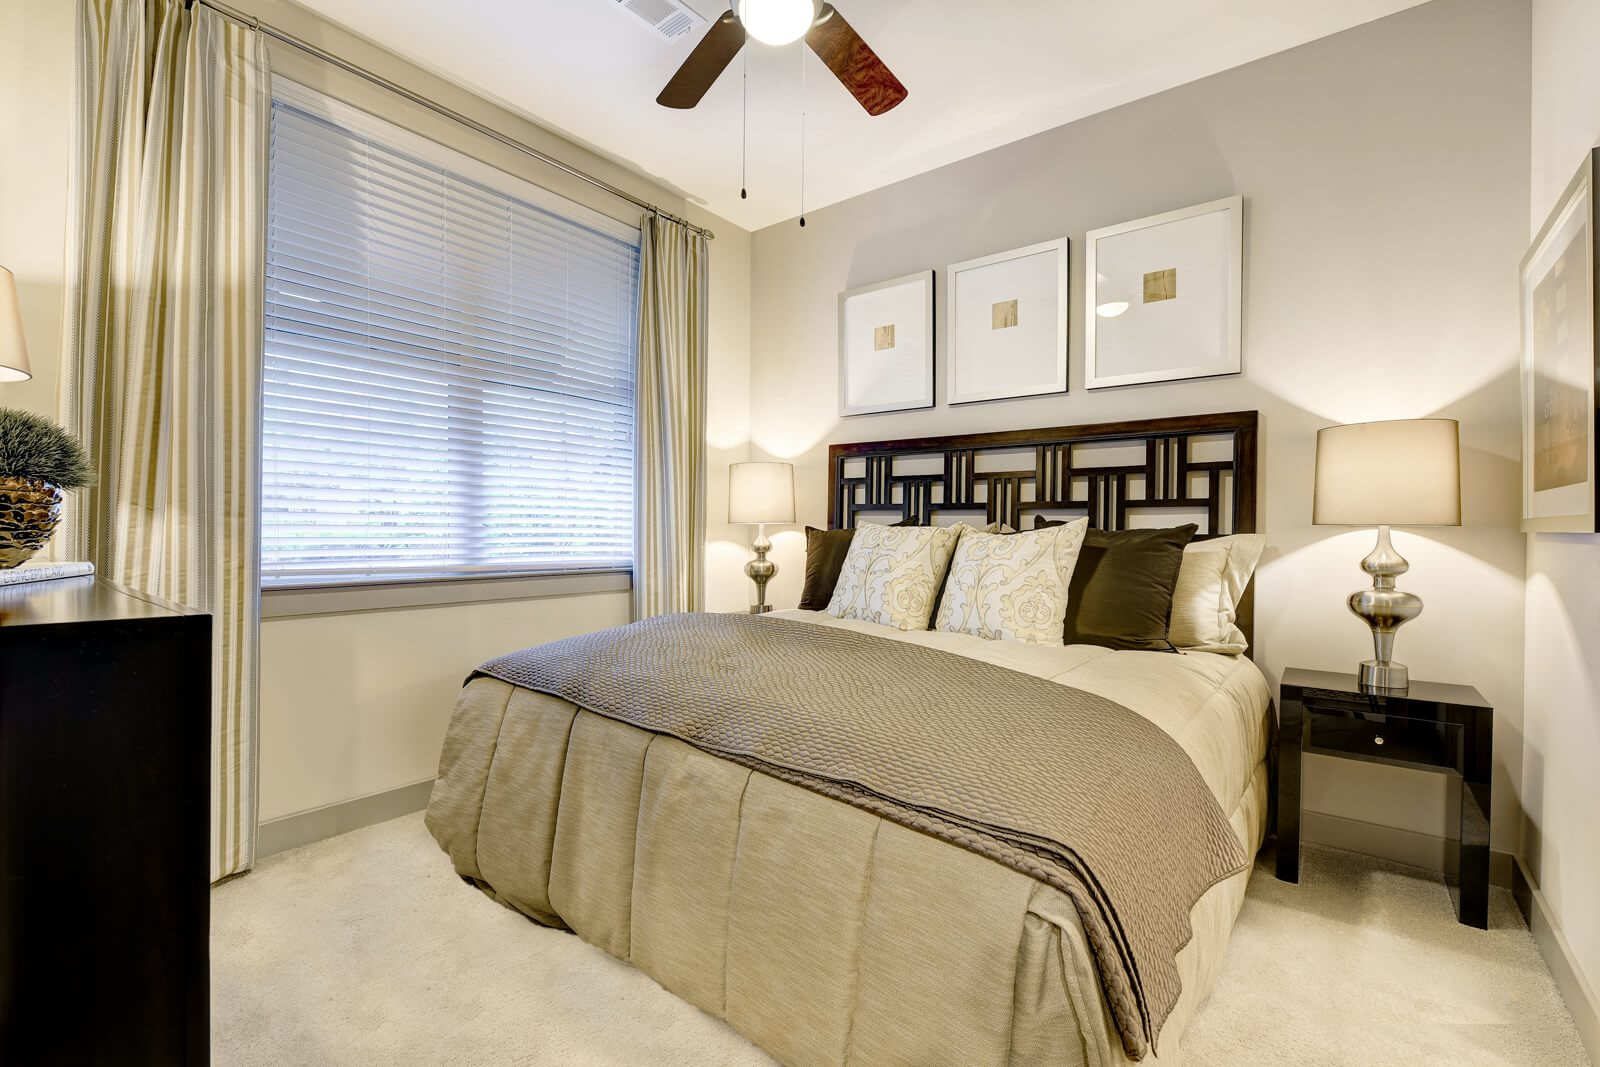 Spacious Bedrooms That Accommodate King Size Beds at Windsor at Cambridge Park, 160 Cambridge Park Drive, Cambridge